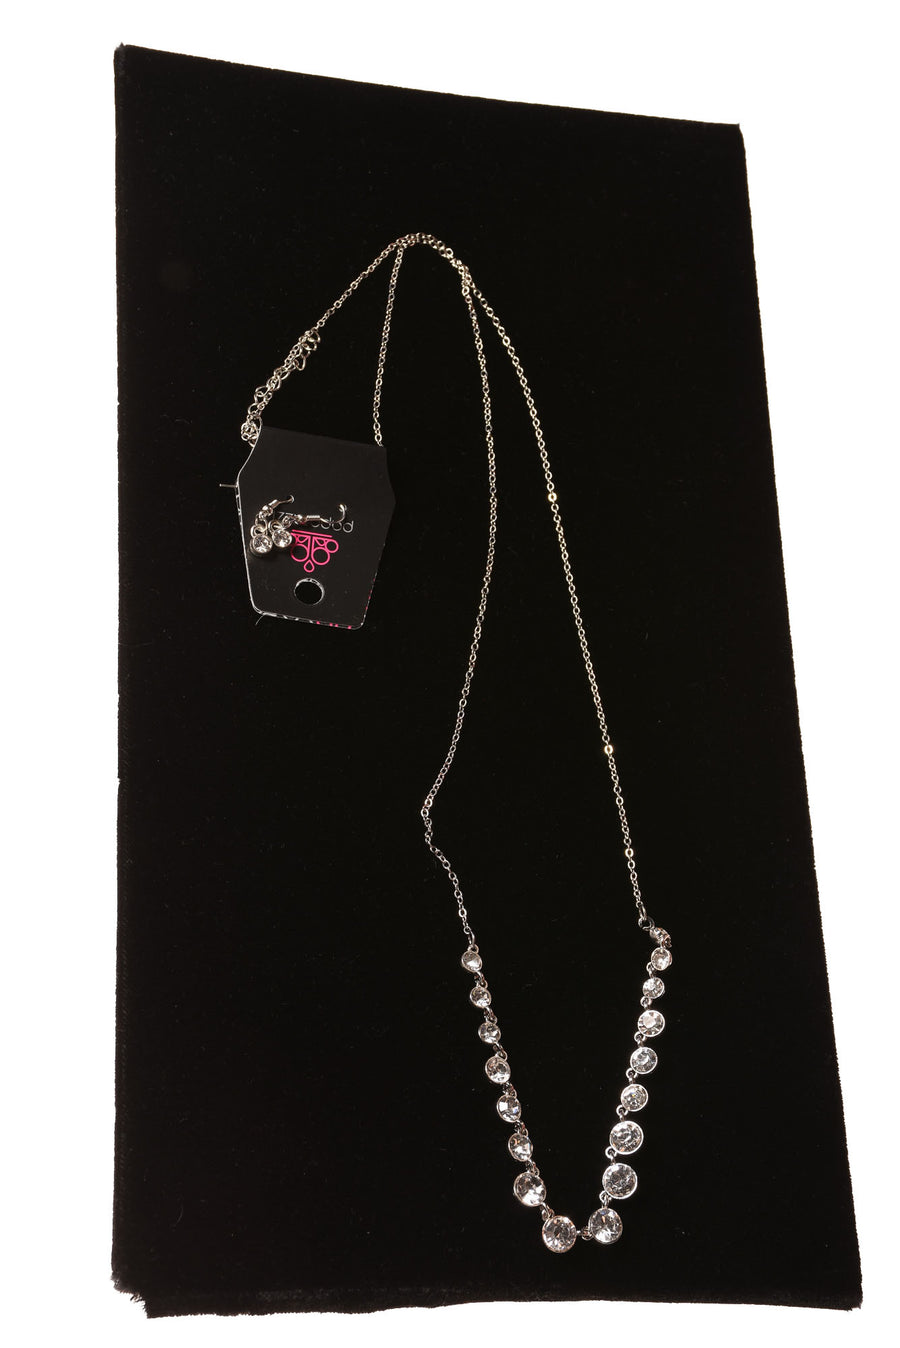 NEW Paparazzi Necklace Set N/A Silvertone